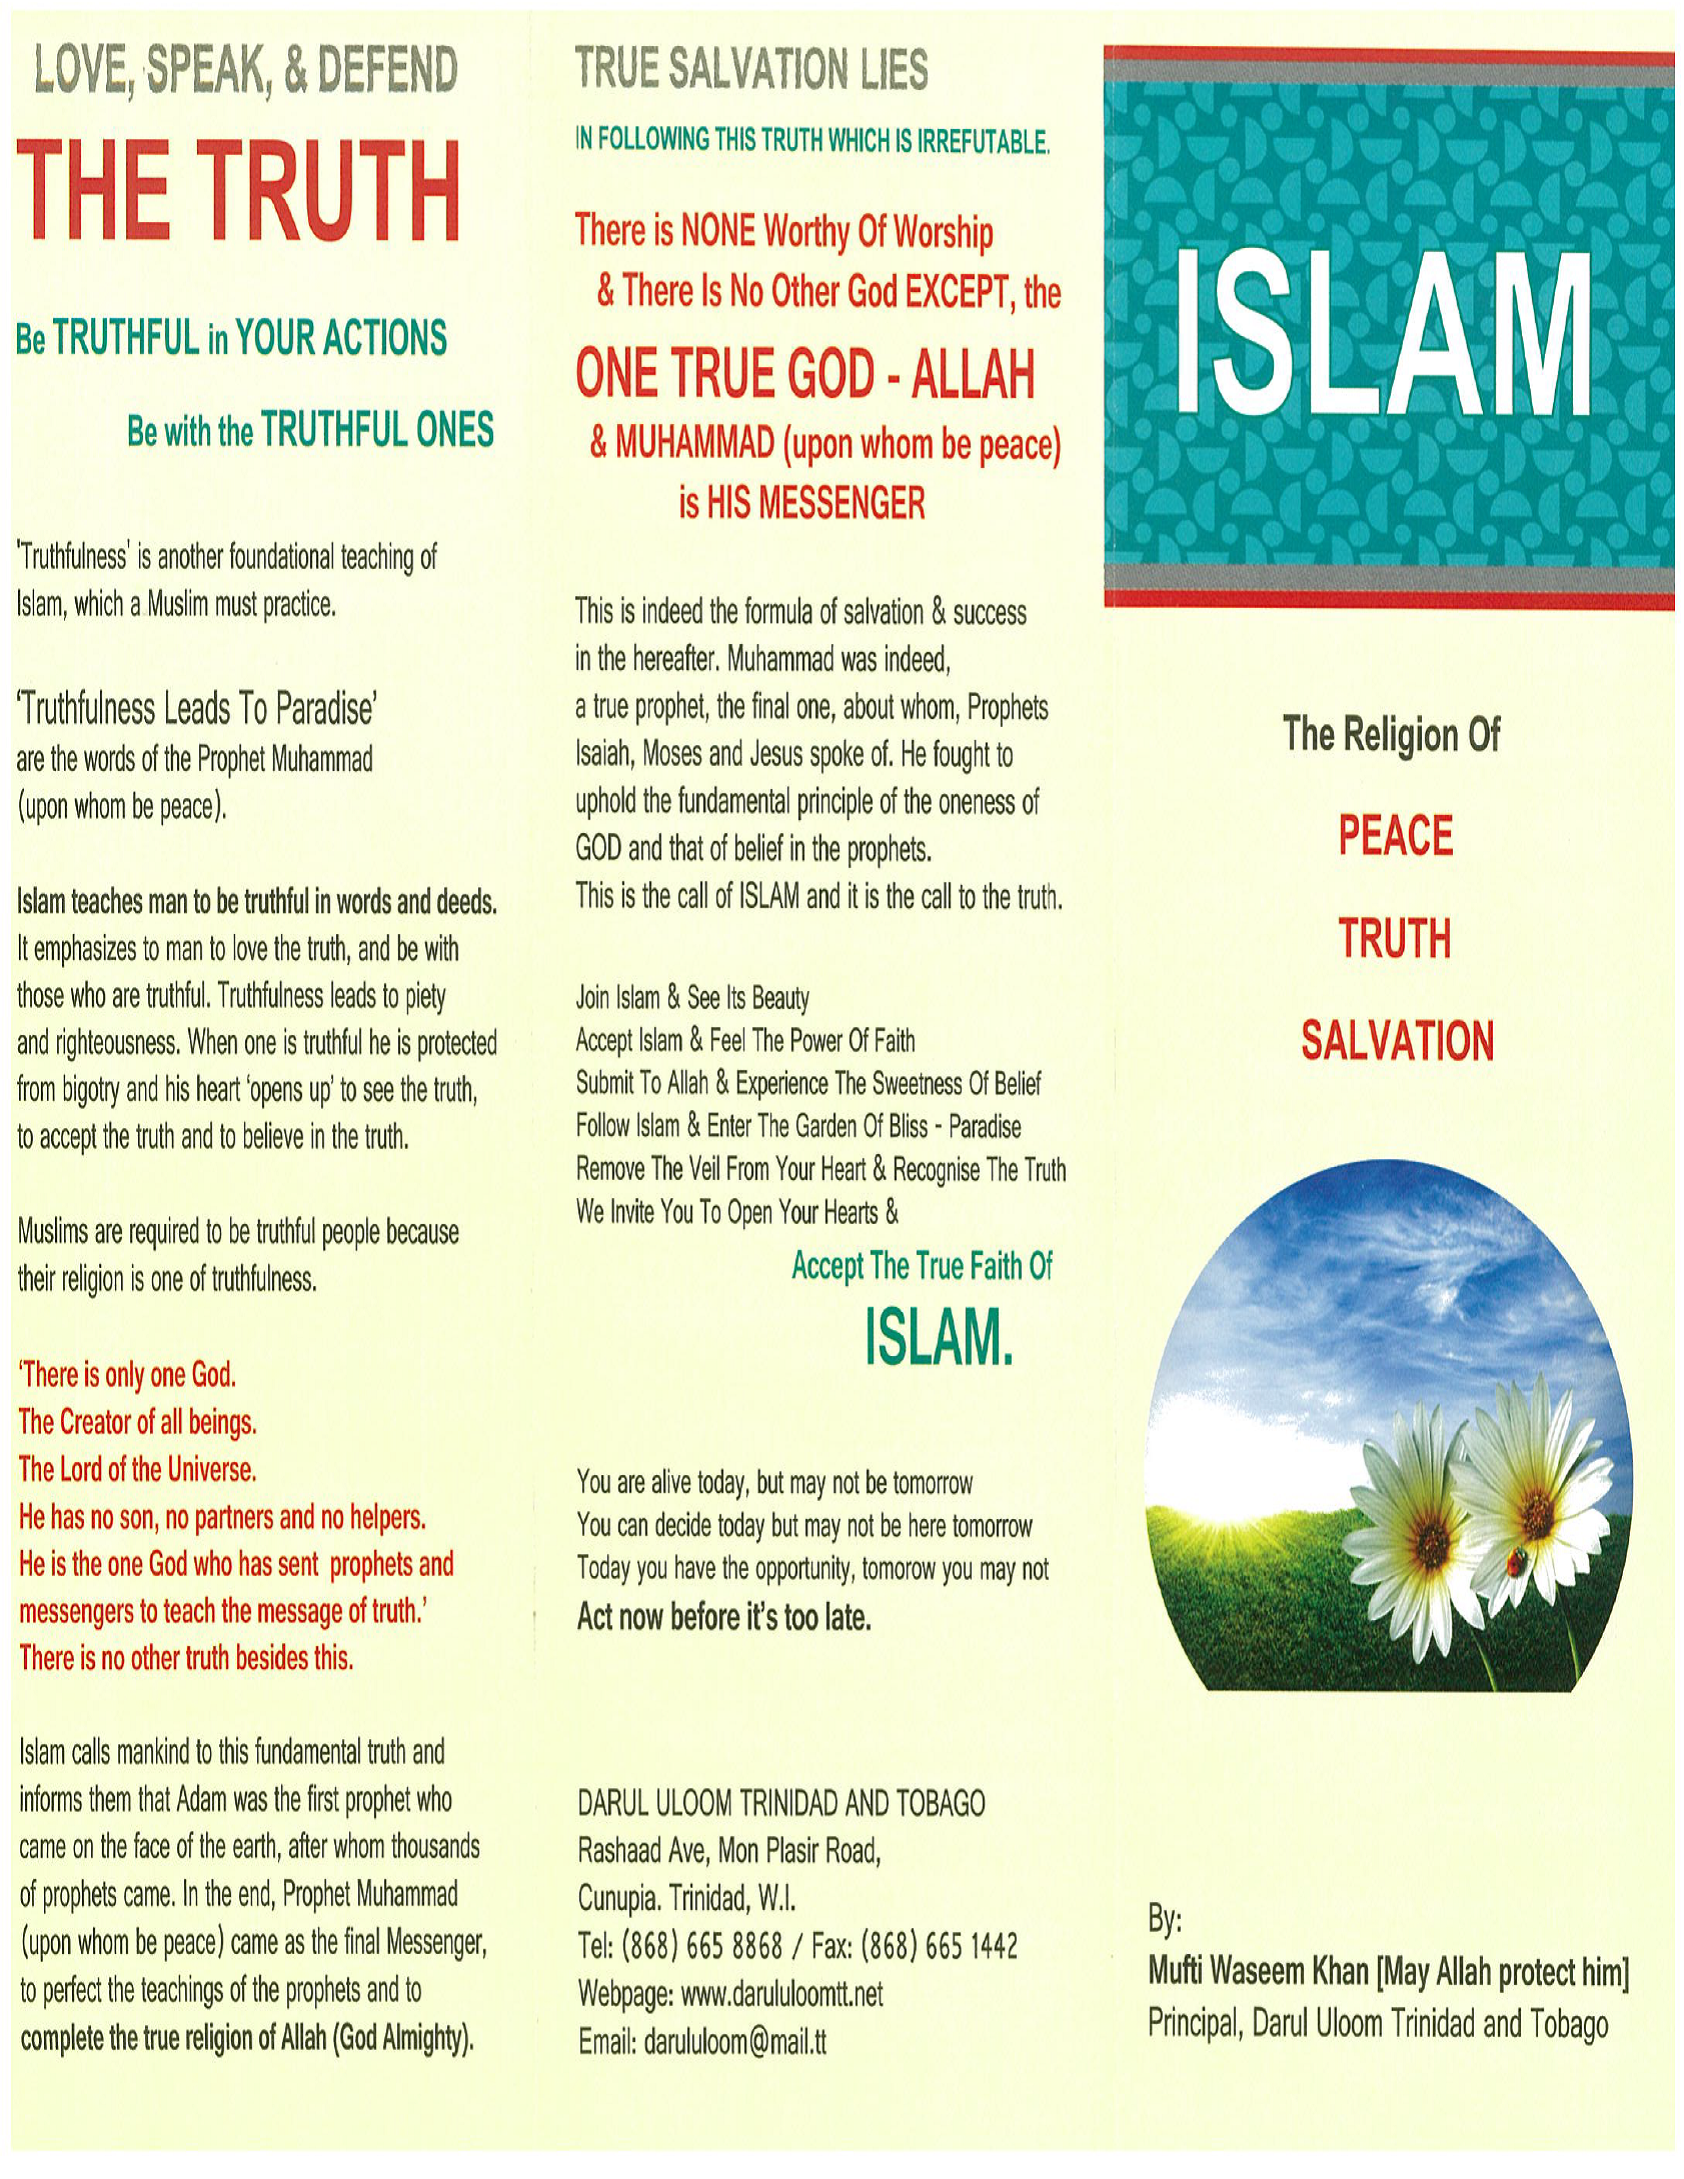 Islam The Religion of Peace, Truth and Salvation (Palm Flex)